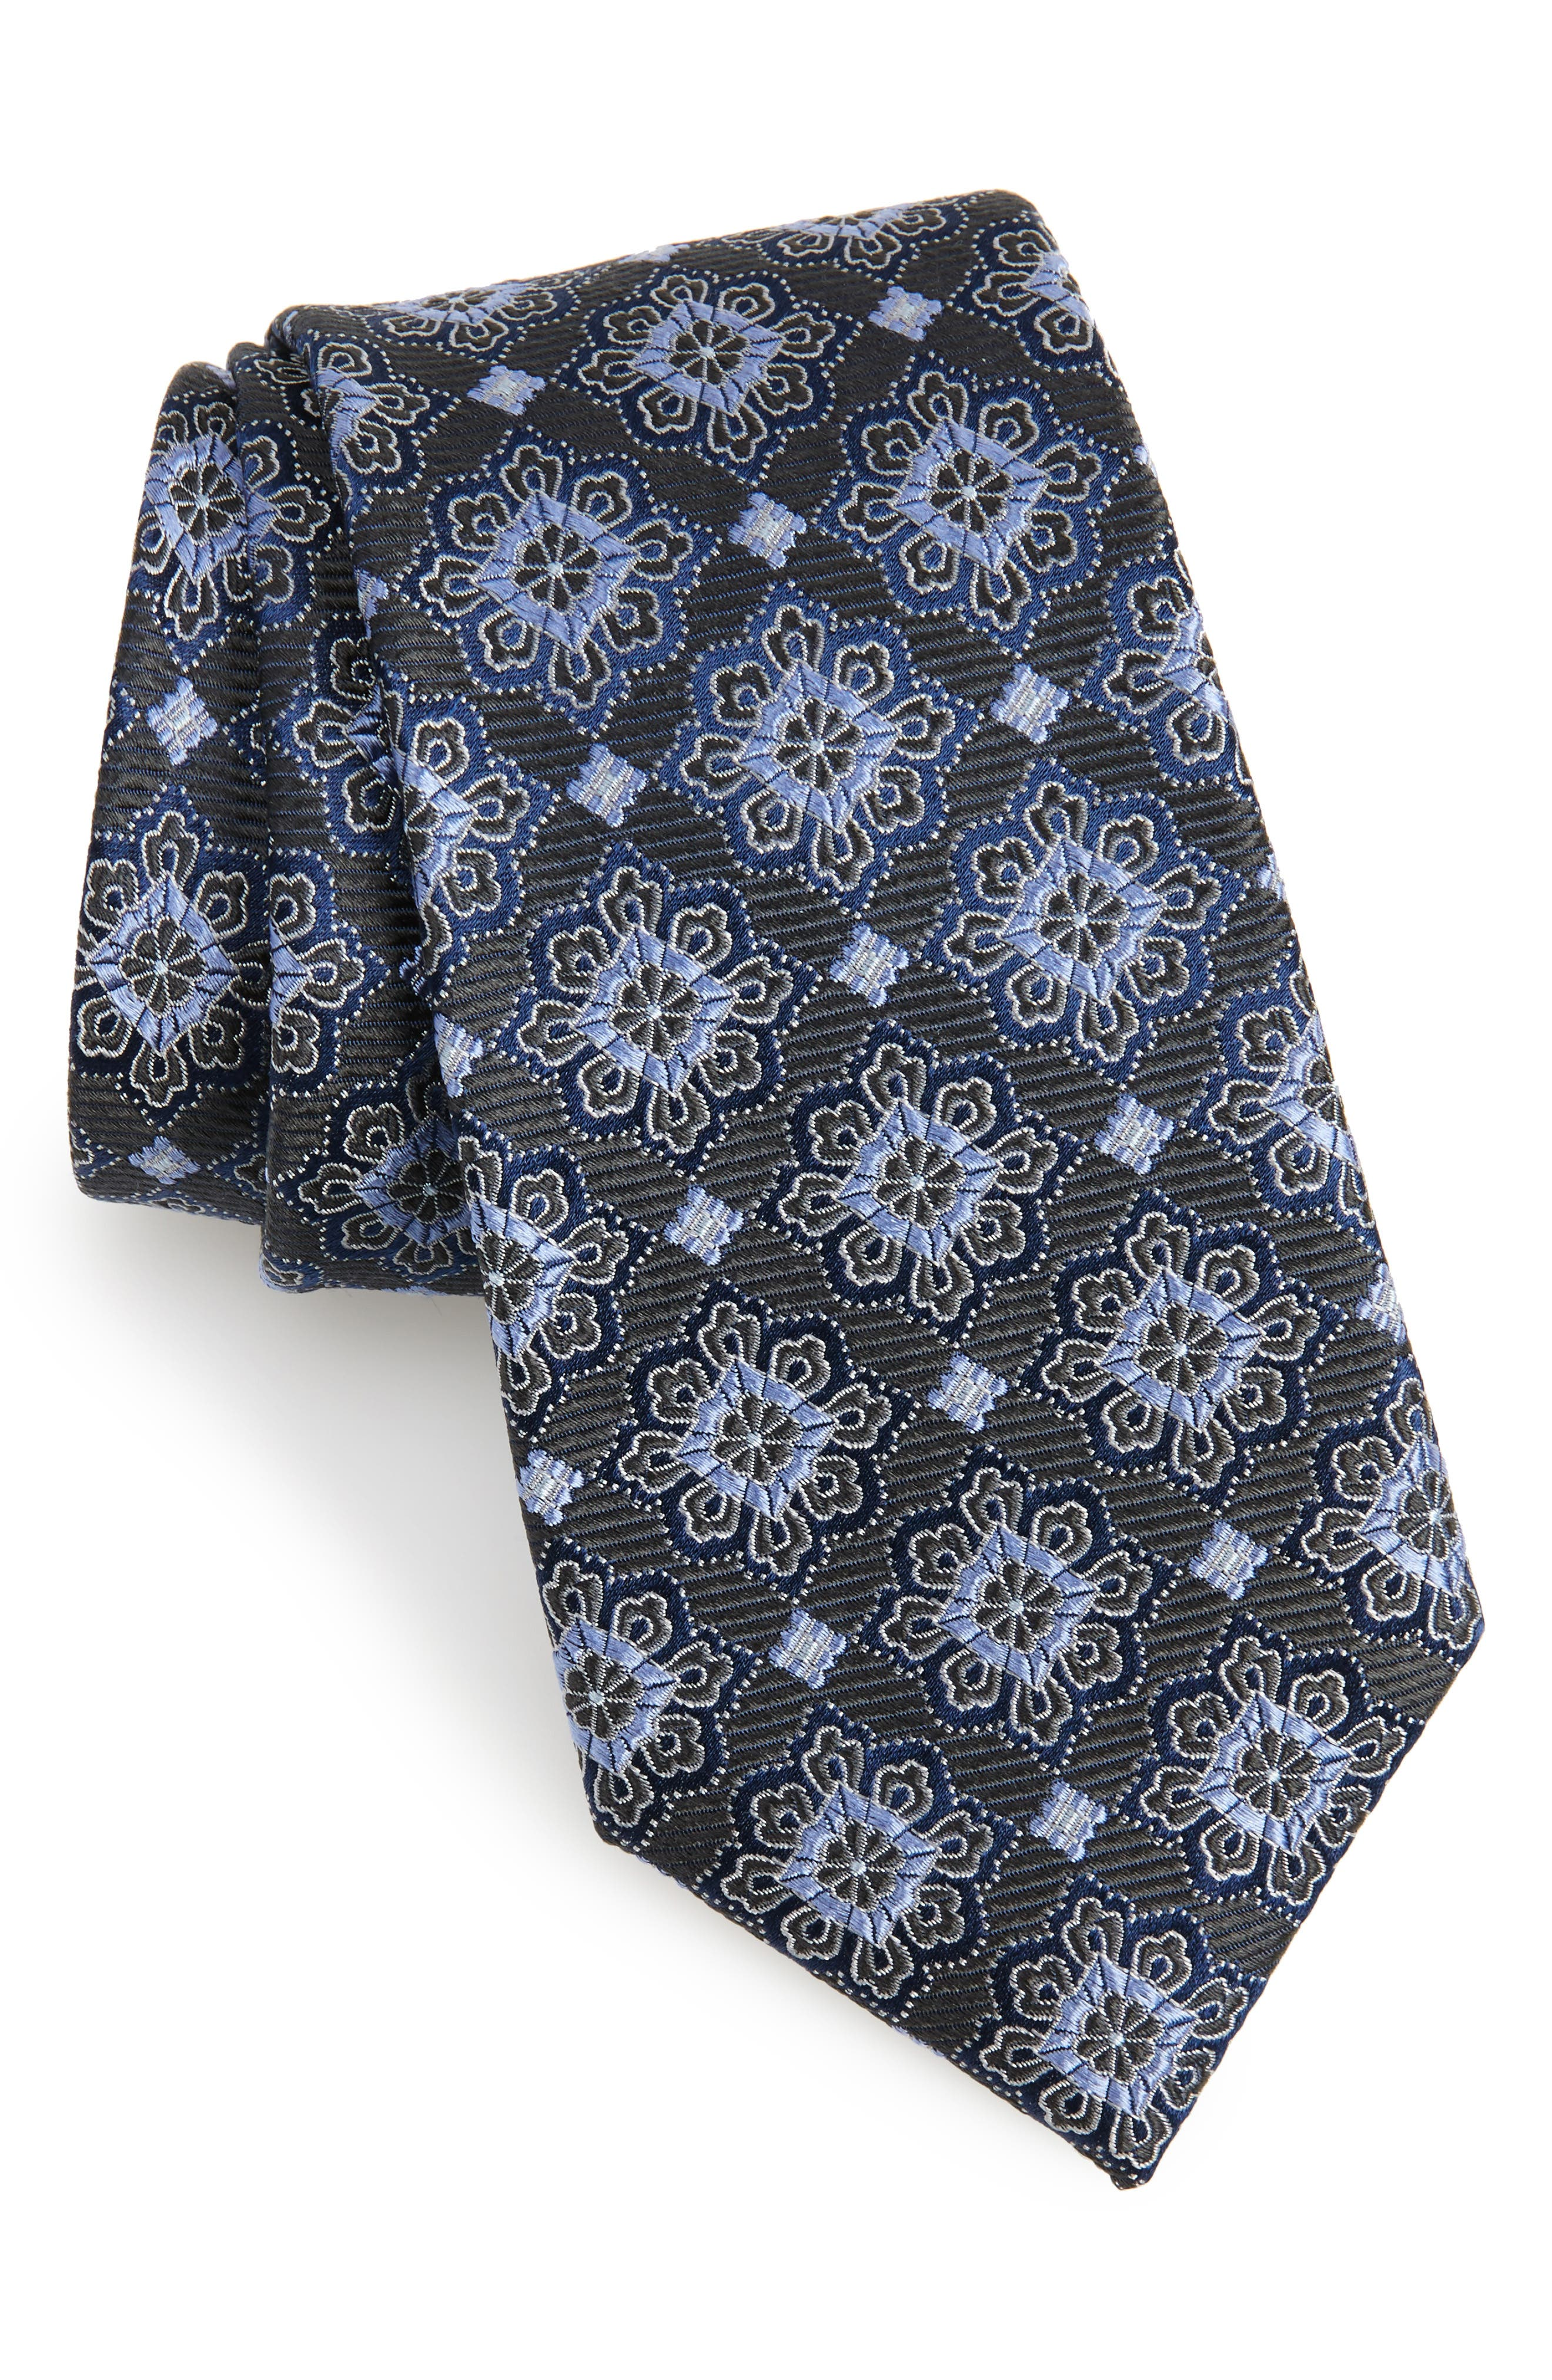 Cleo Medallion Silk Tie,                             Main thumbnail 1, color,                             025